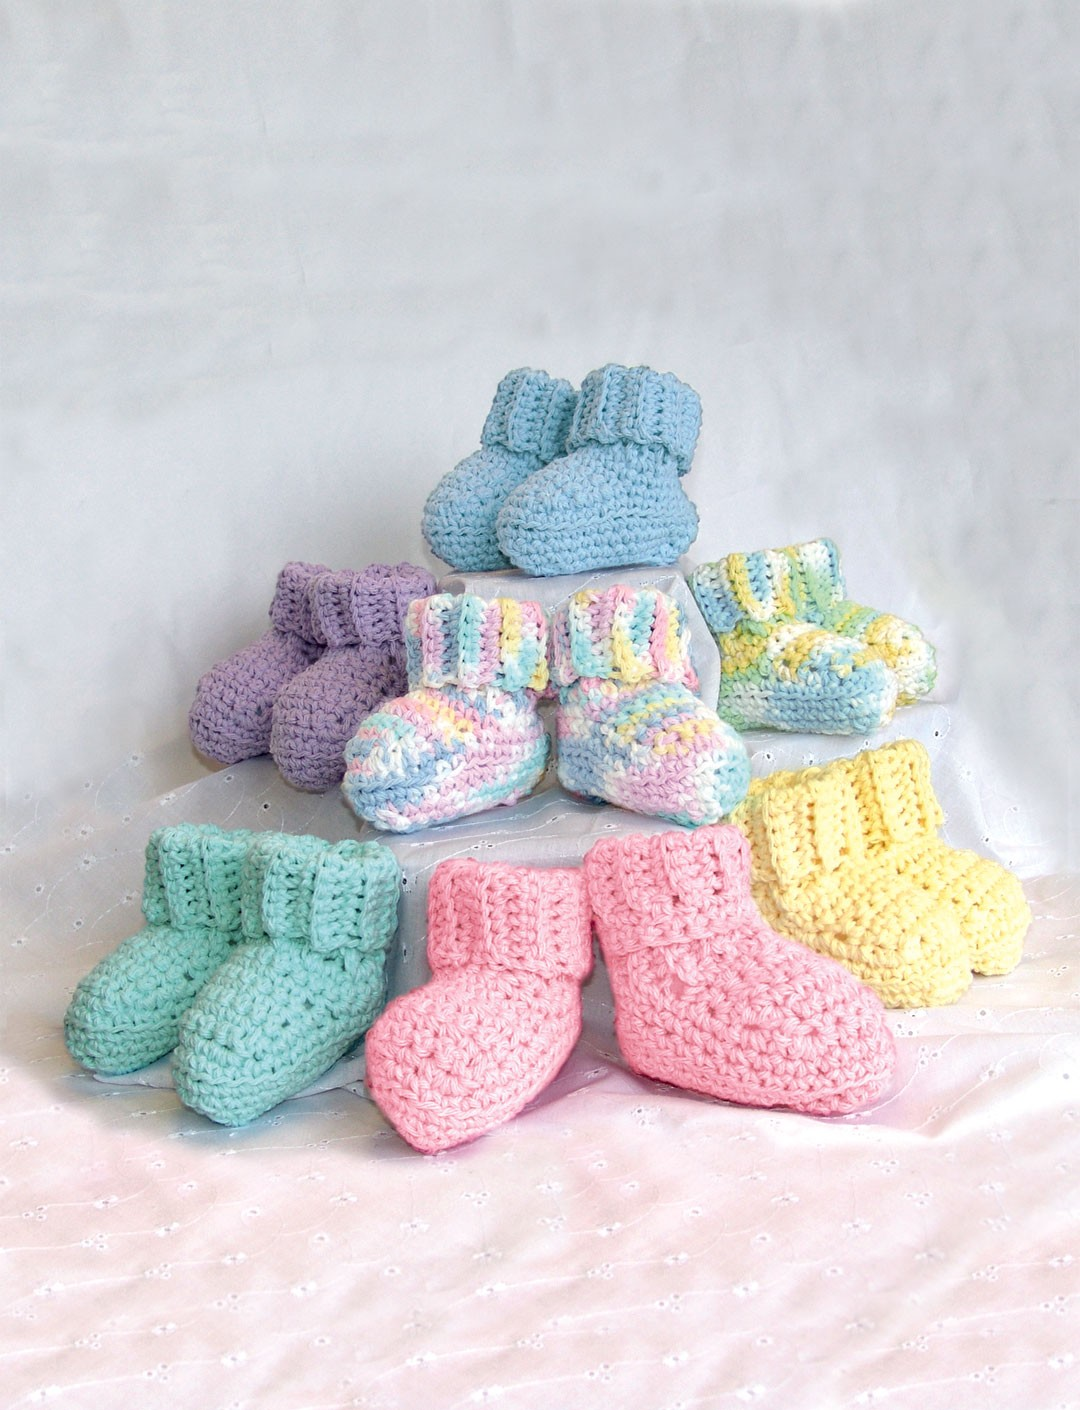 Bernat Crochet Baby Bib Pattern : Handicrafter Cotton - Bibs & Booties (crochet) - Patterns ...